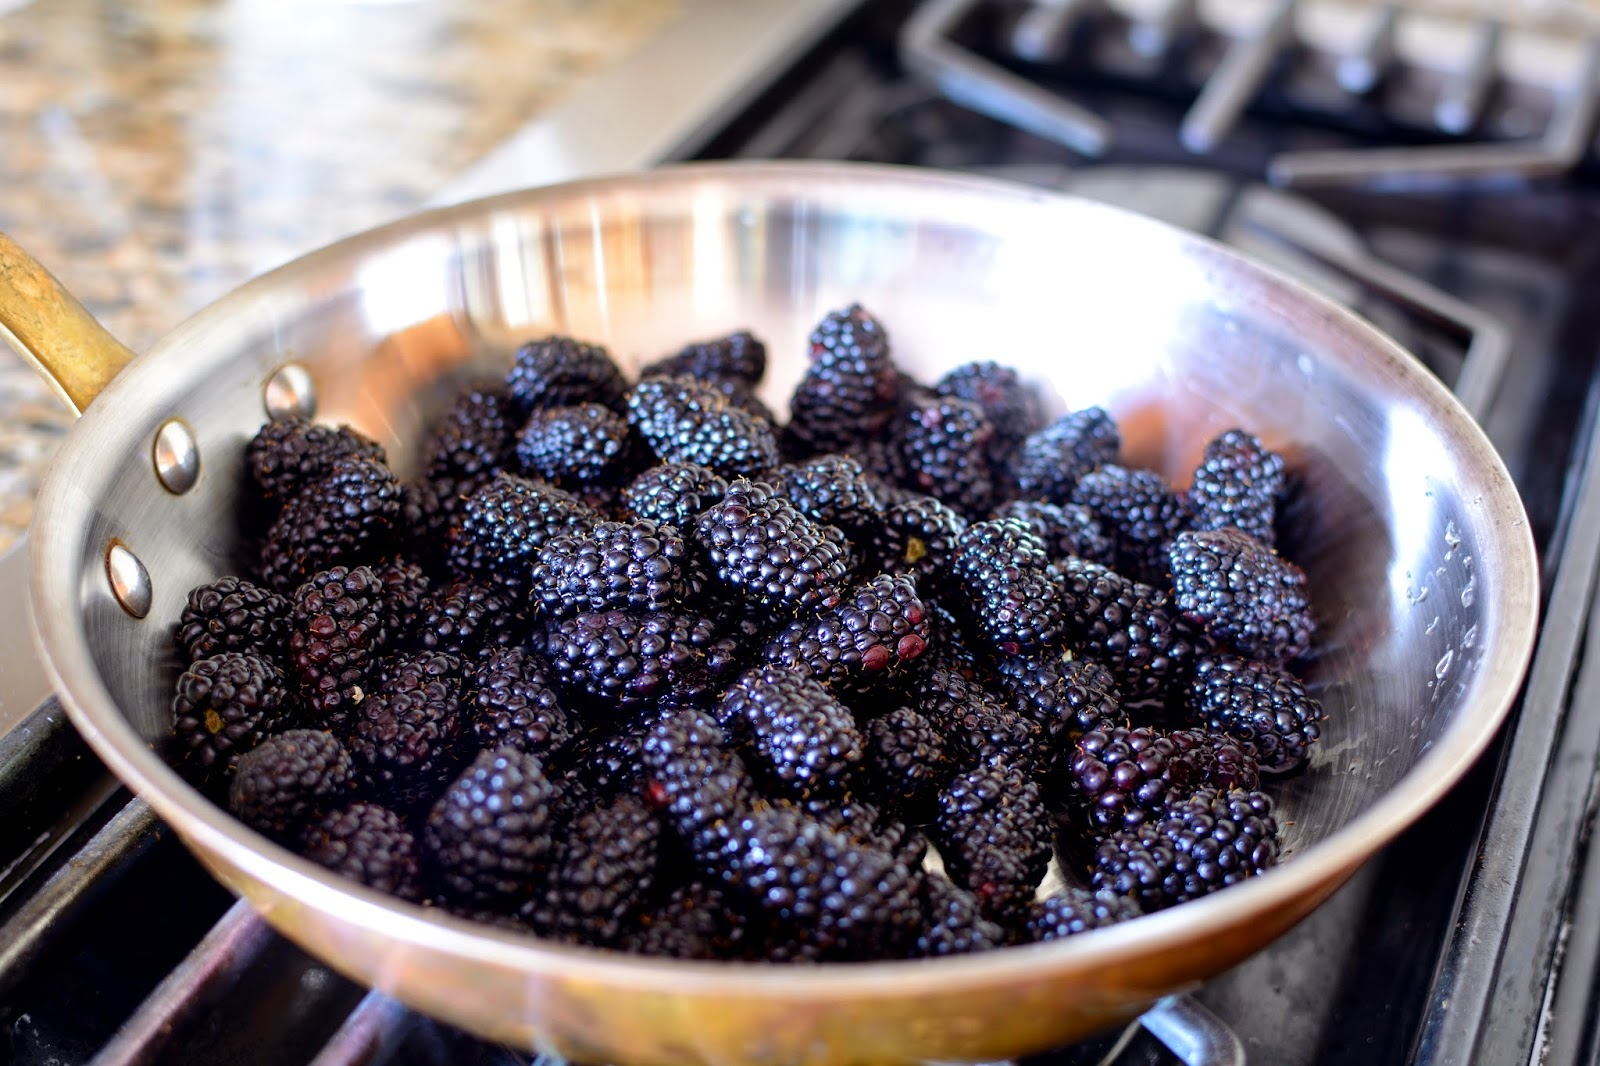 skillet filled with blackberries